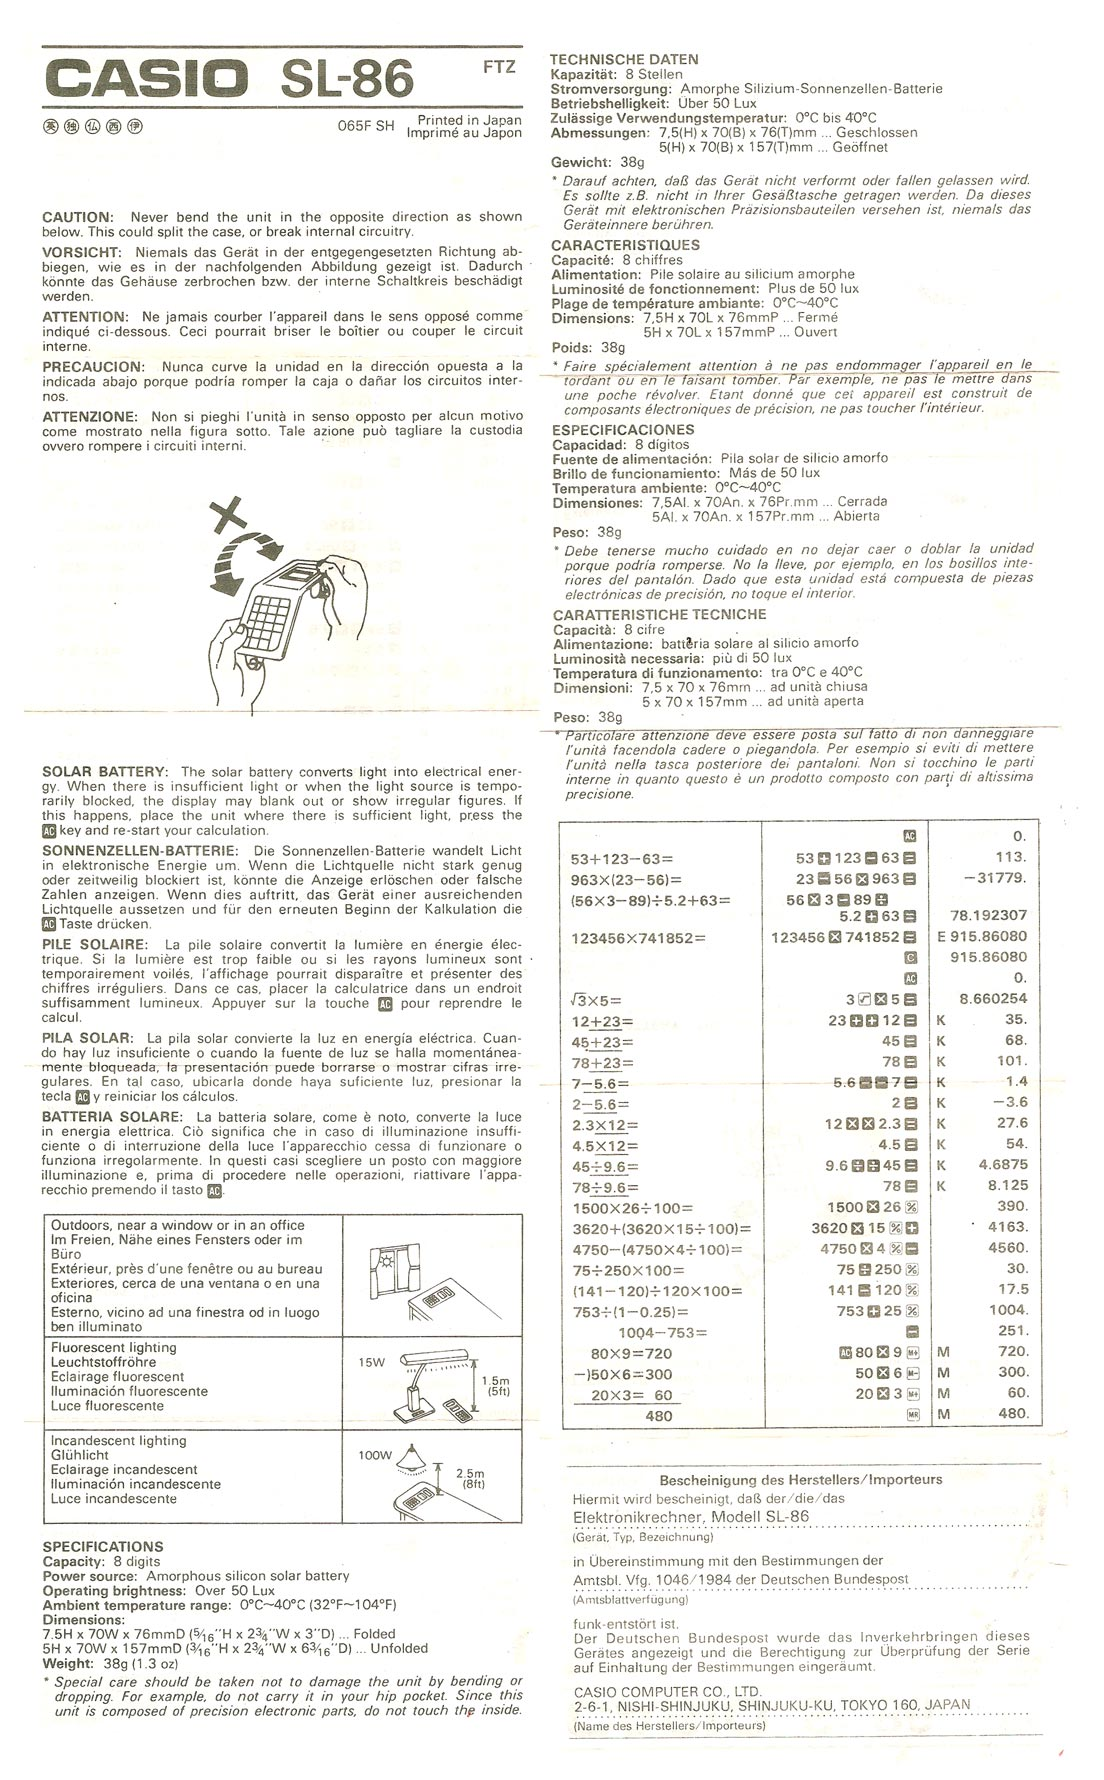 Casio Calculator Manual